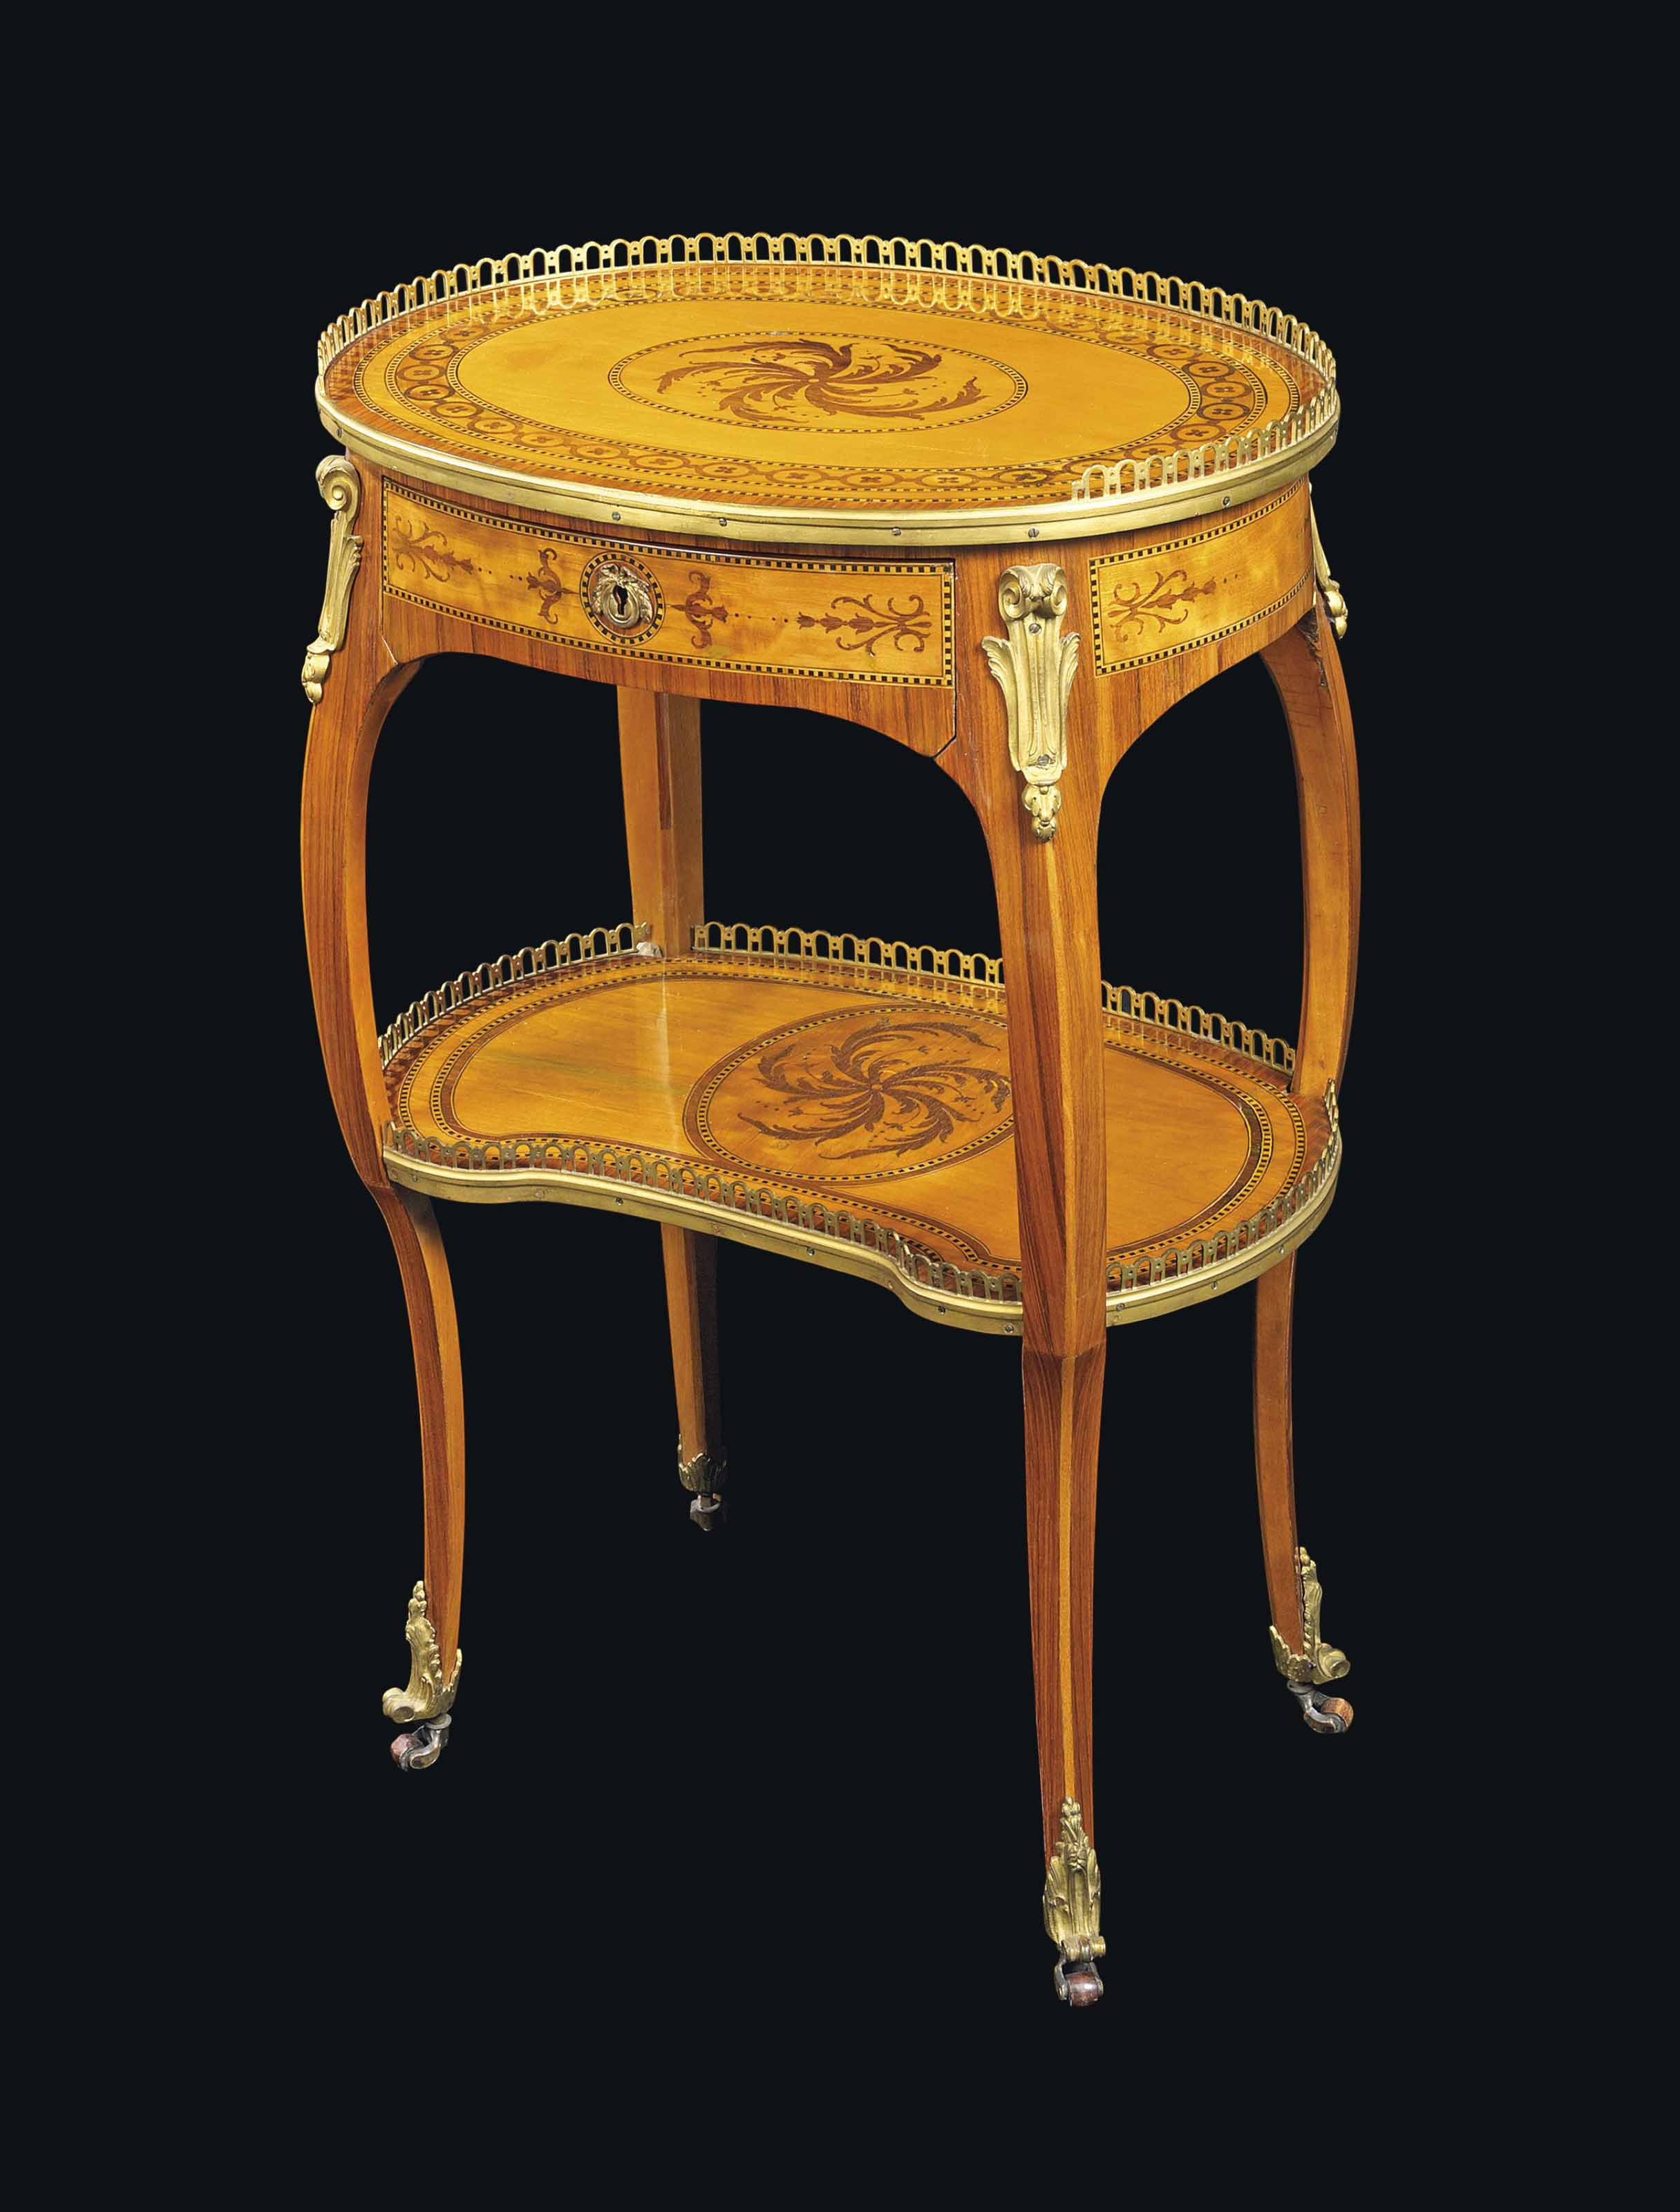 A LATE LOUIS XV ORMOLU-MOUNTED TULIPWOOD, CITRONNIER AND MARQUETRY PETIT TABLE A ECRIRE